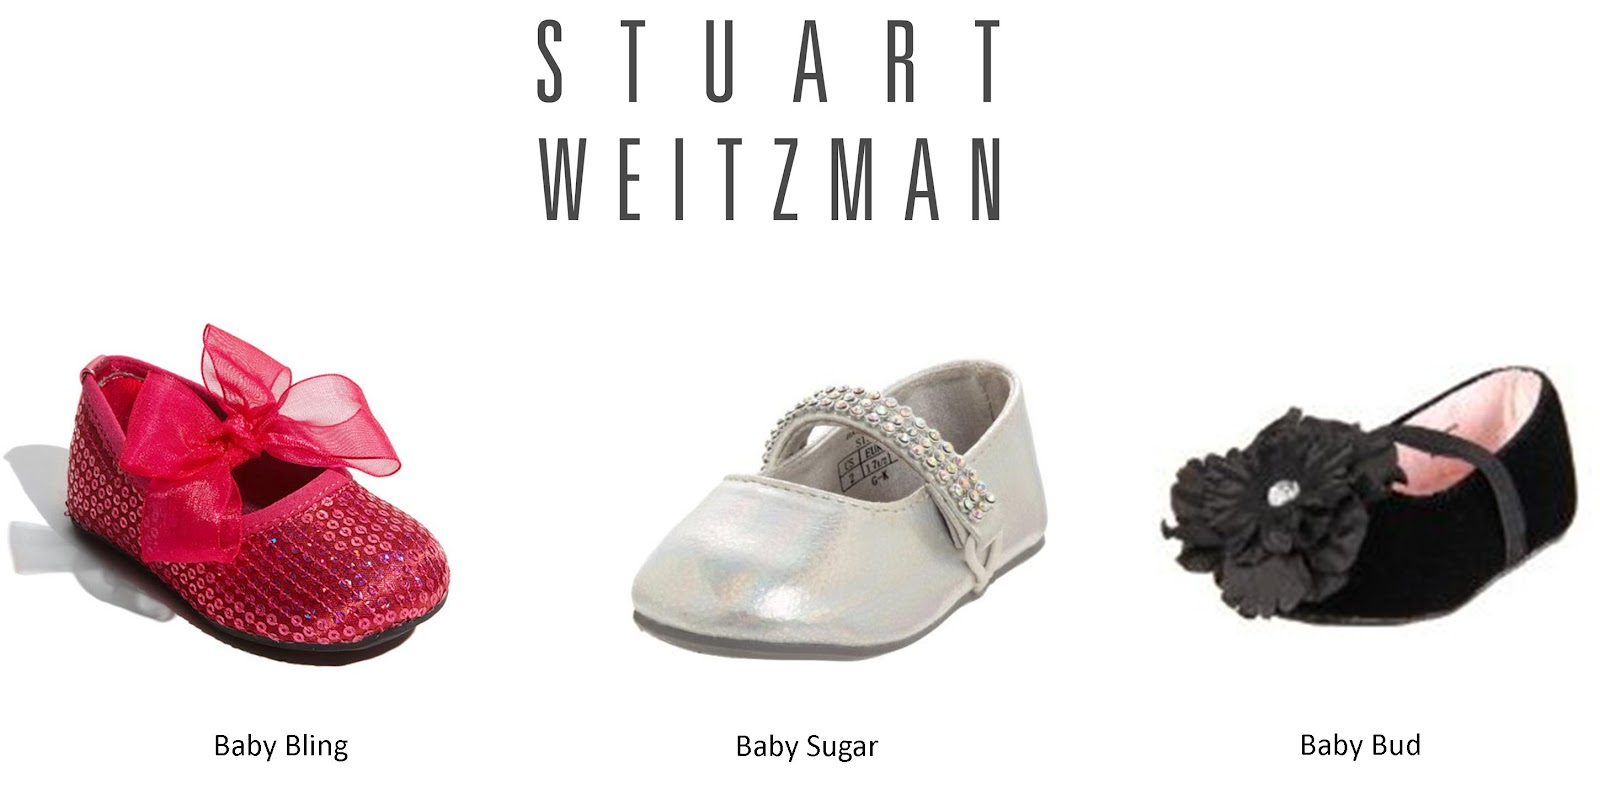 7558cd979fe My First Weitzman Shoes Review   Giveaway ~ The Review Stew